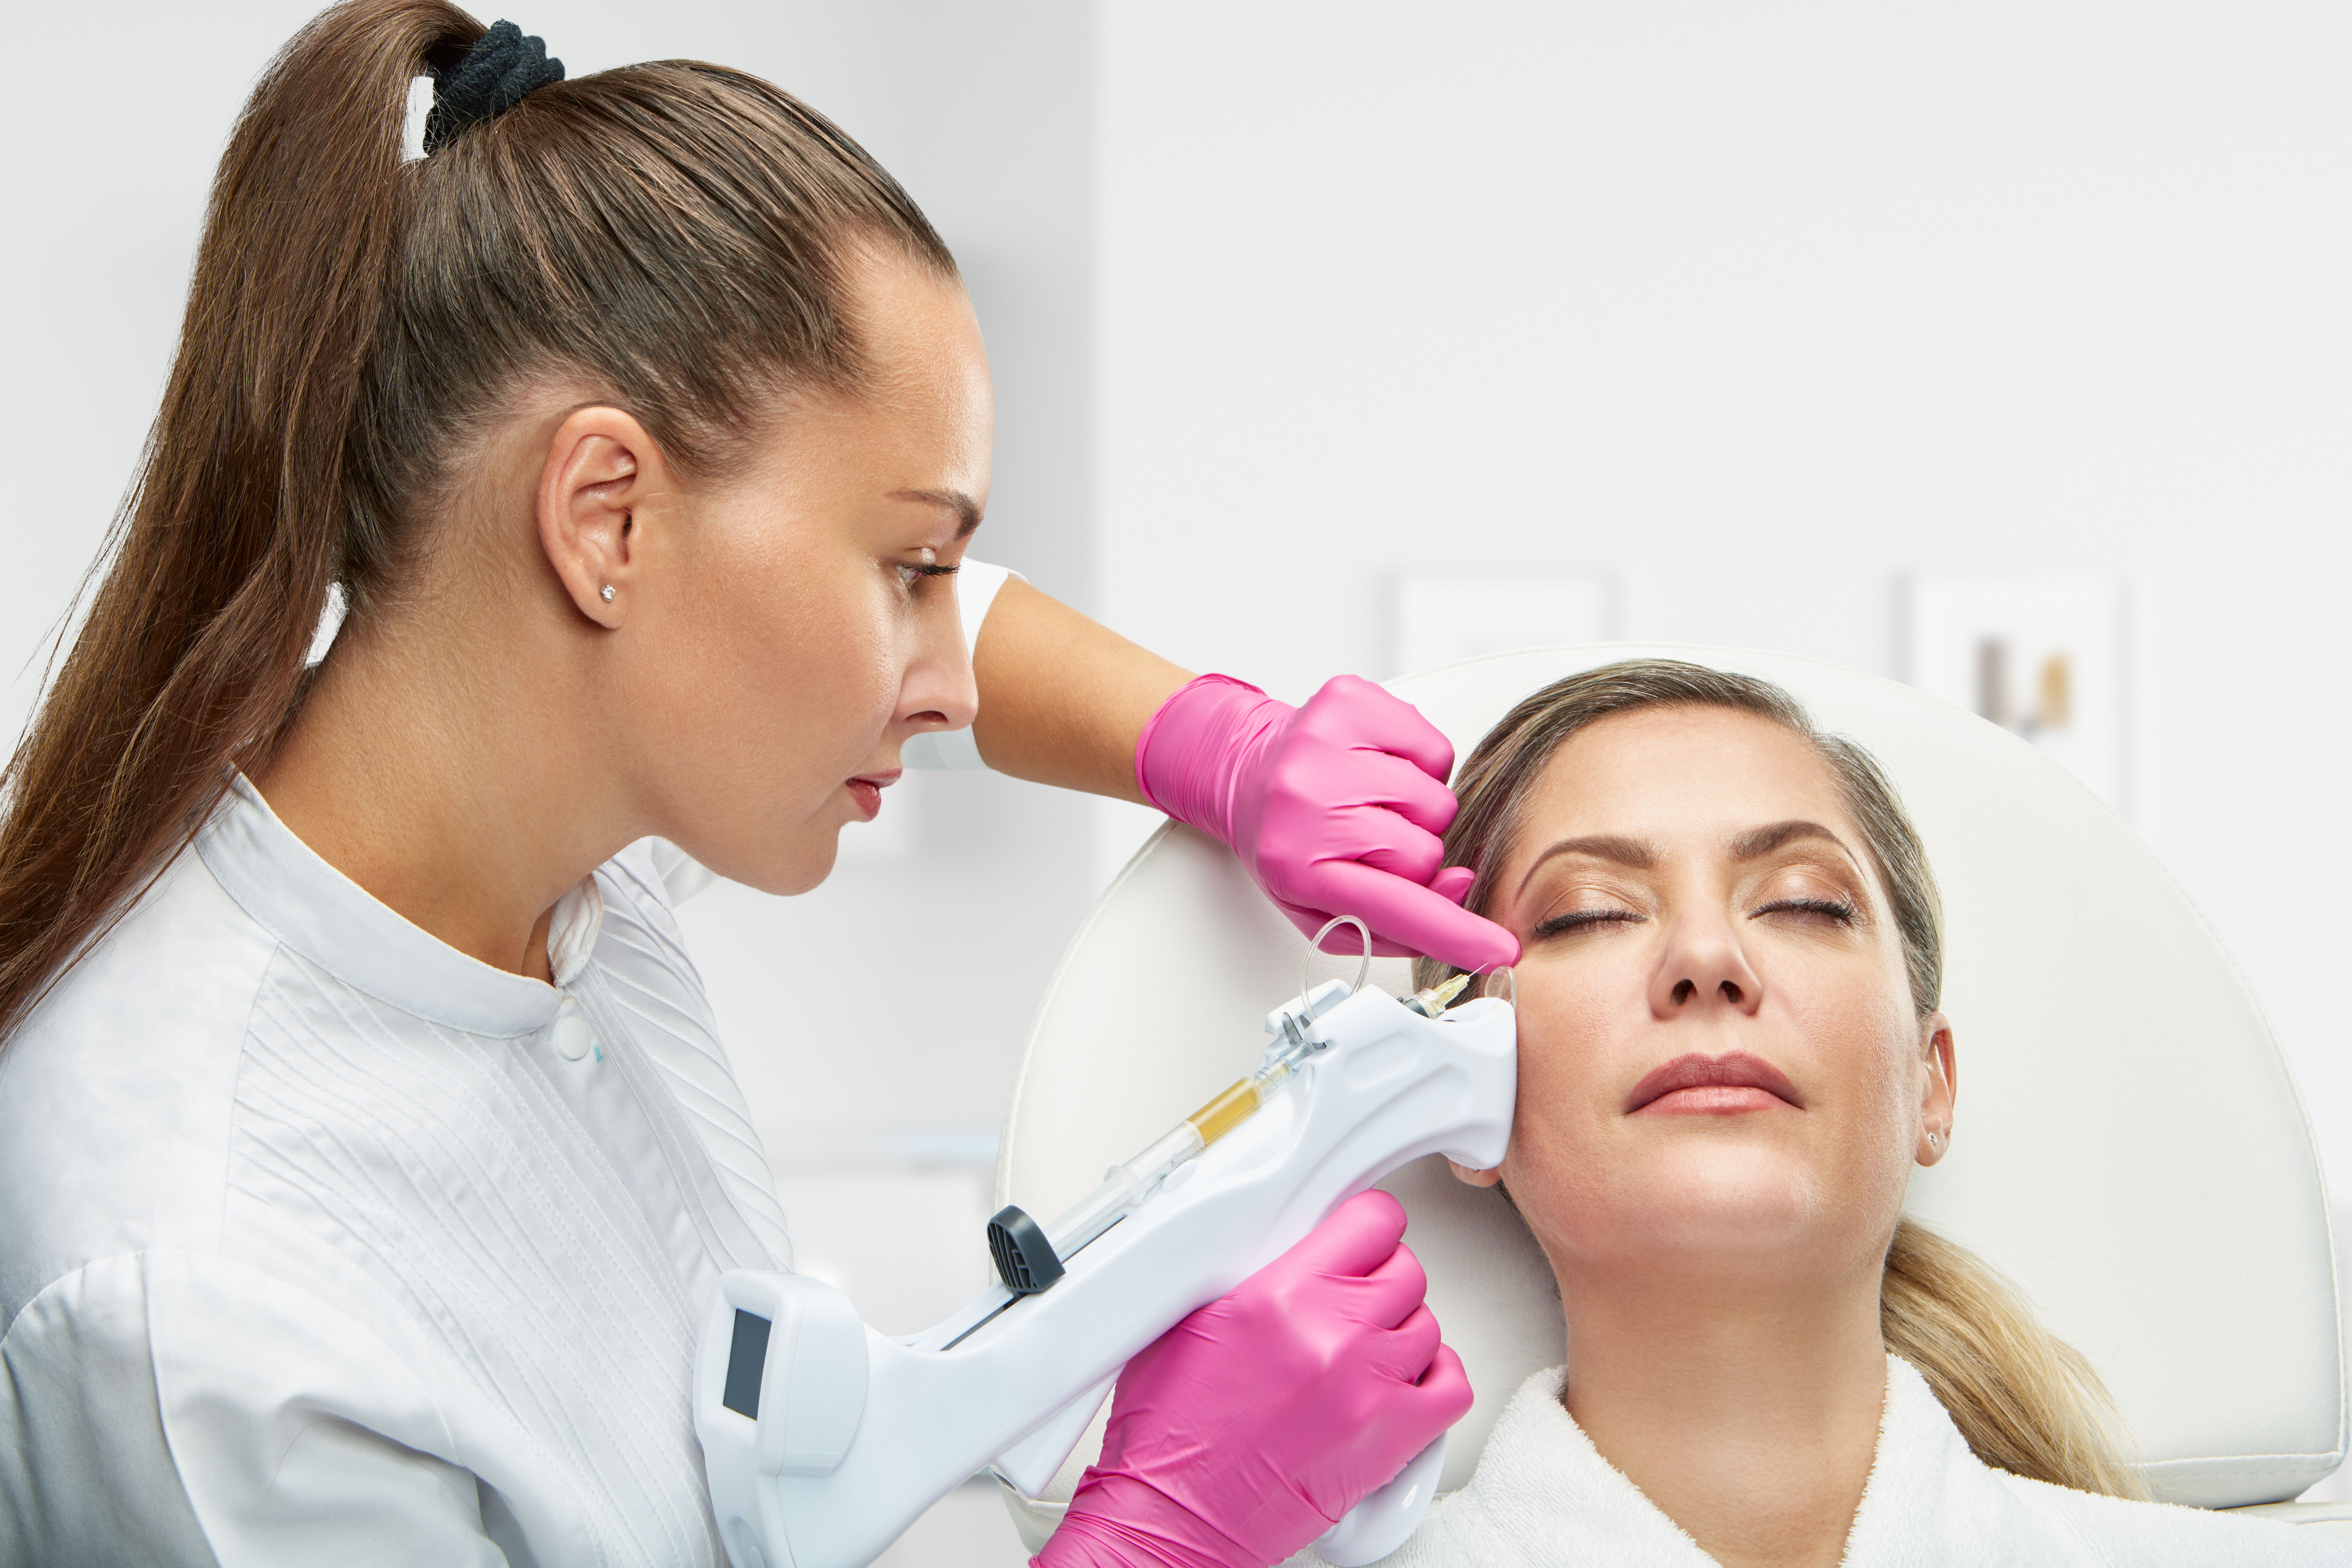 A woman undergoing PRP therapy